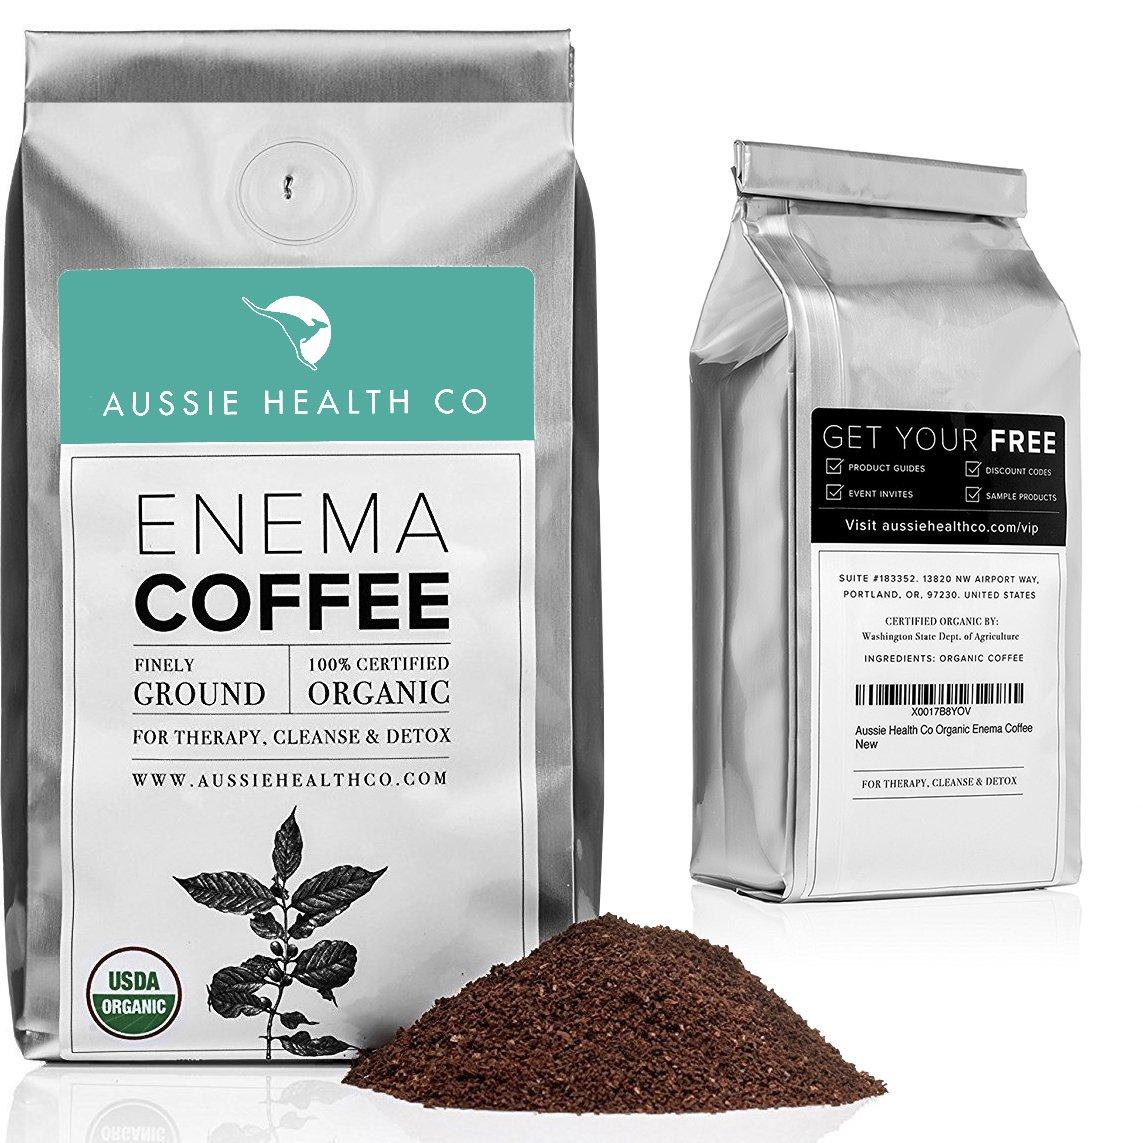 419° Roasted Organic Enema Coffee (1LB) For Unmatchable Enema & Gerson Cleanses. 100% USDA Certified Pre-Ground Organic Beans. Made in Seattle. by AUSSIE HEALTH CO